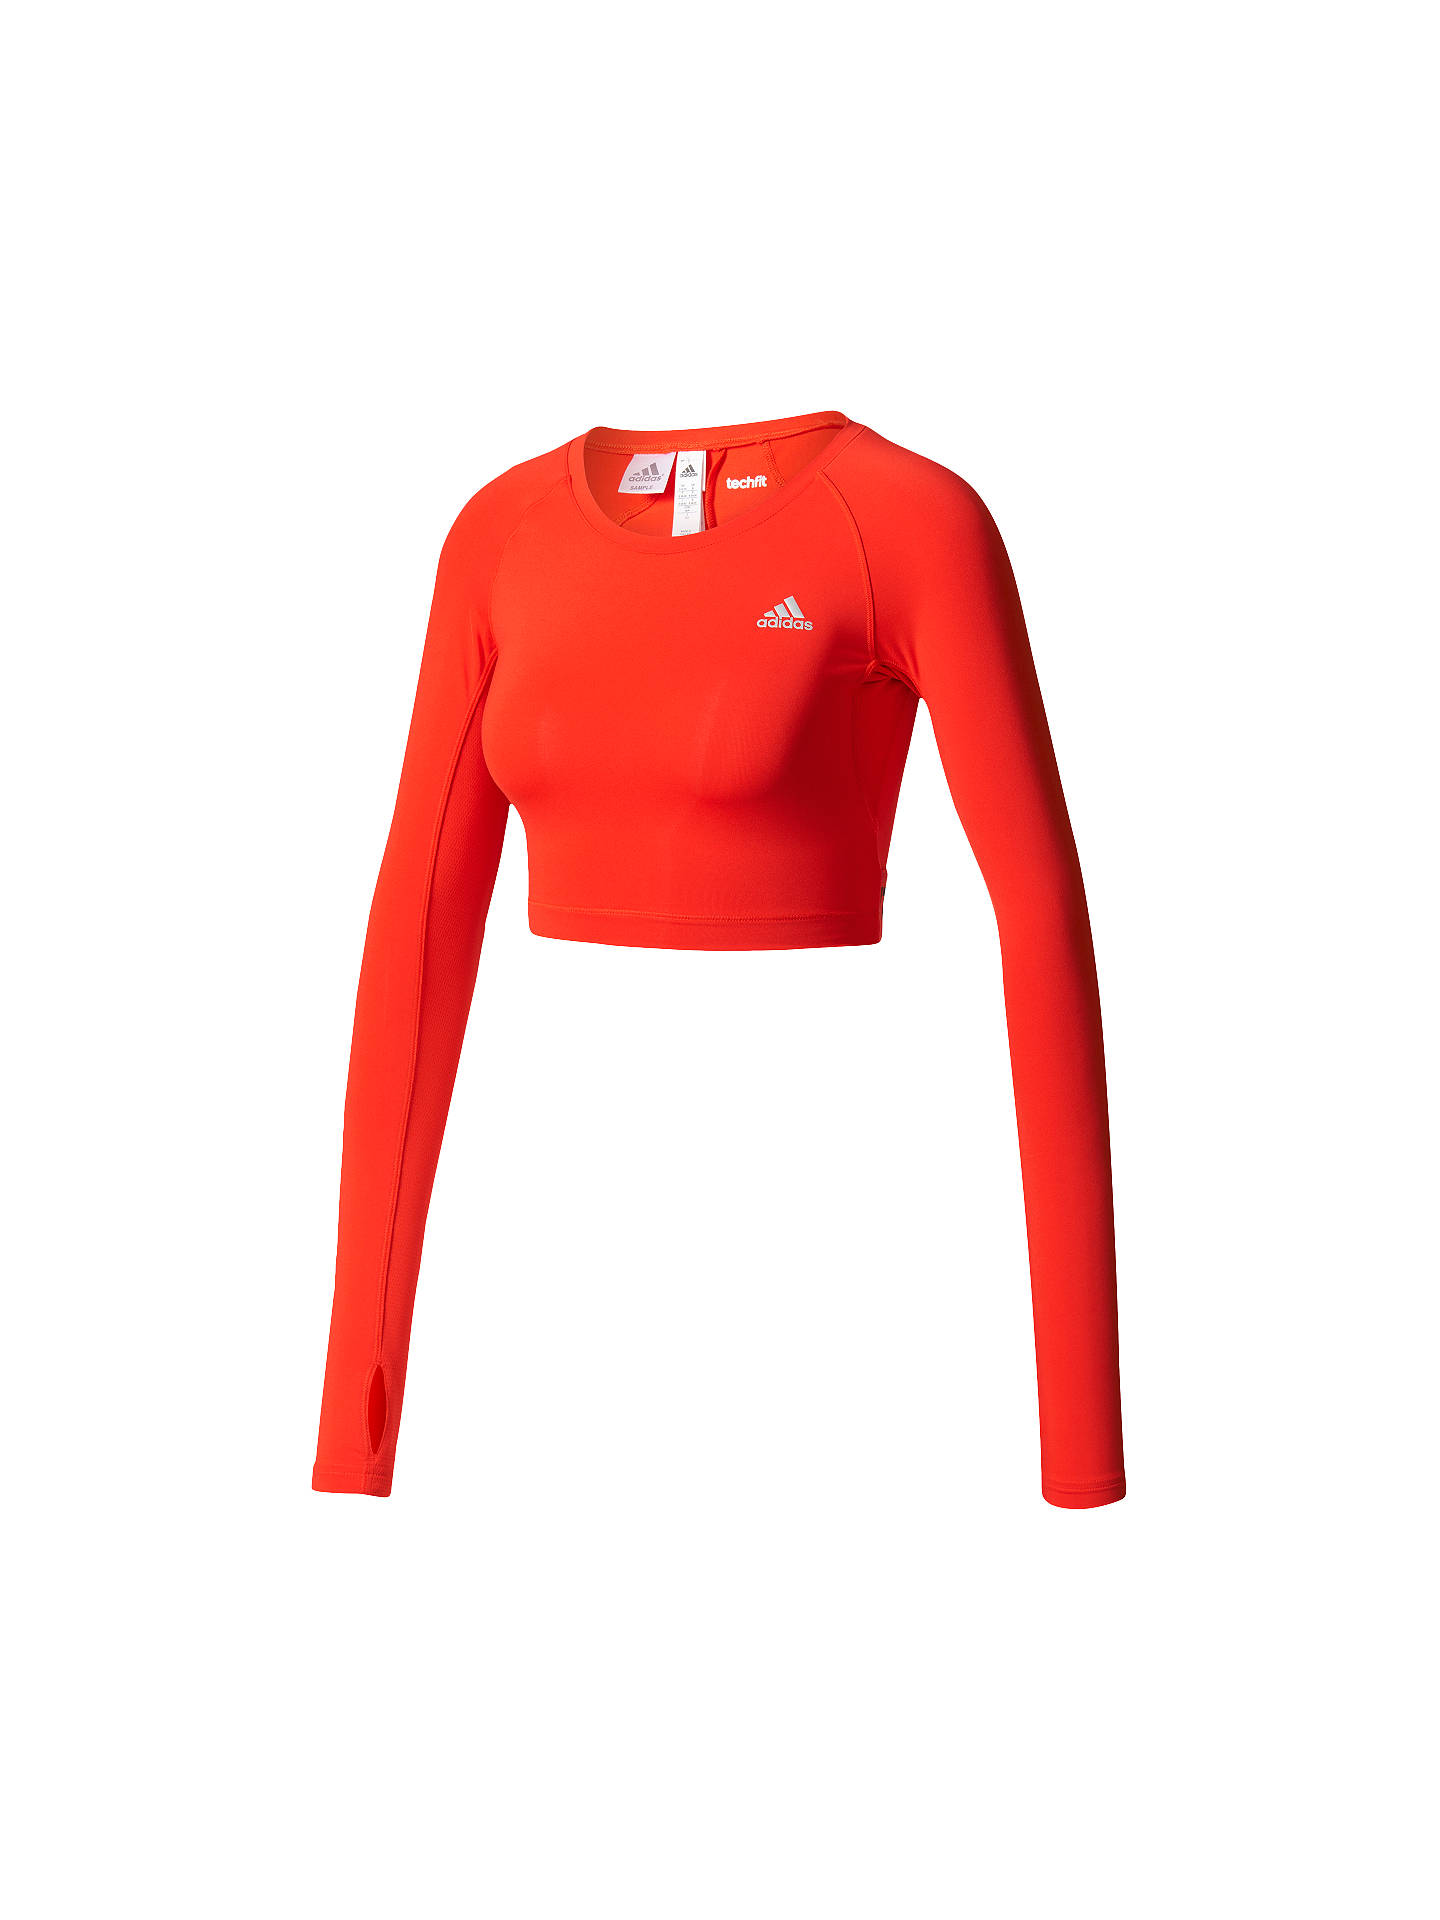 24c82d3652466 Buy Adidas Techfit Long Sleeve Training Crop Top, Red, XS Online at  johnlewis.